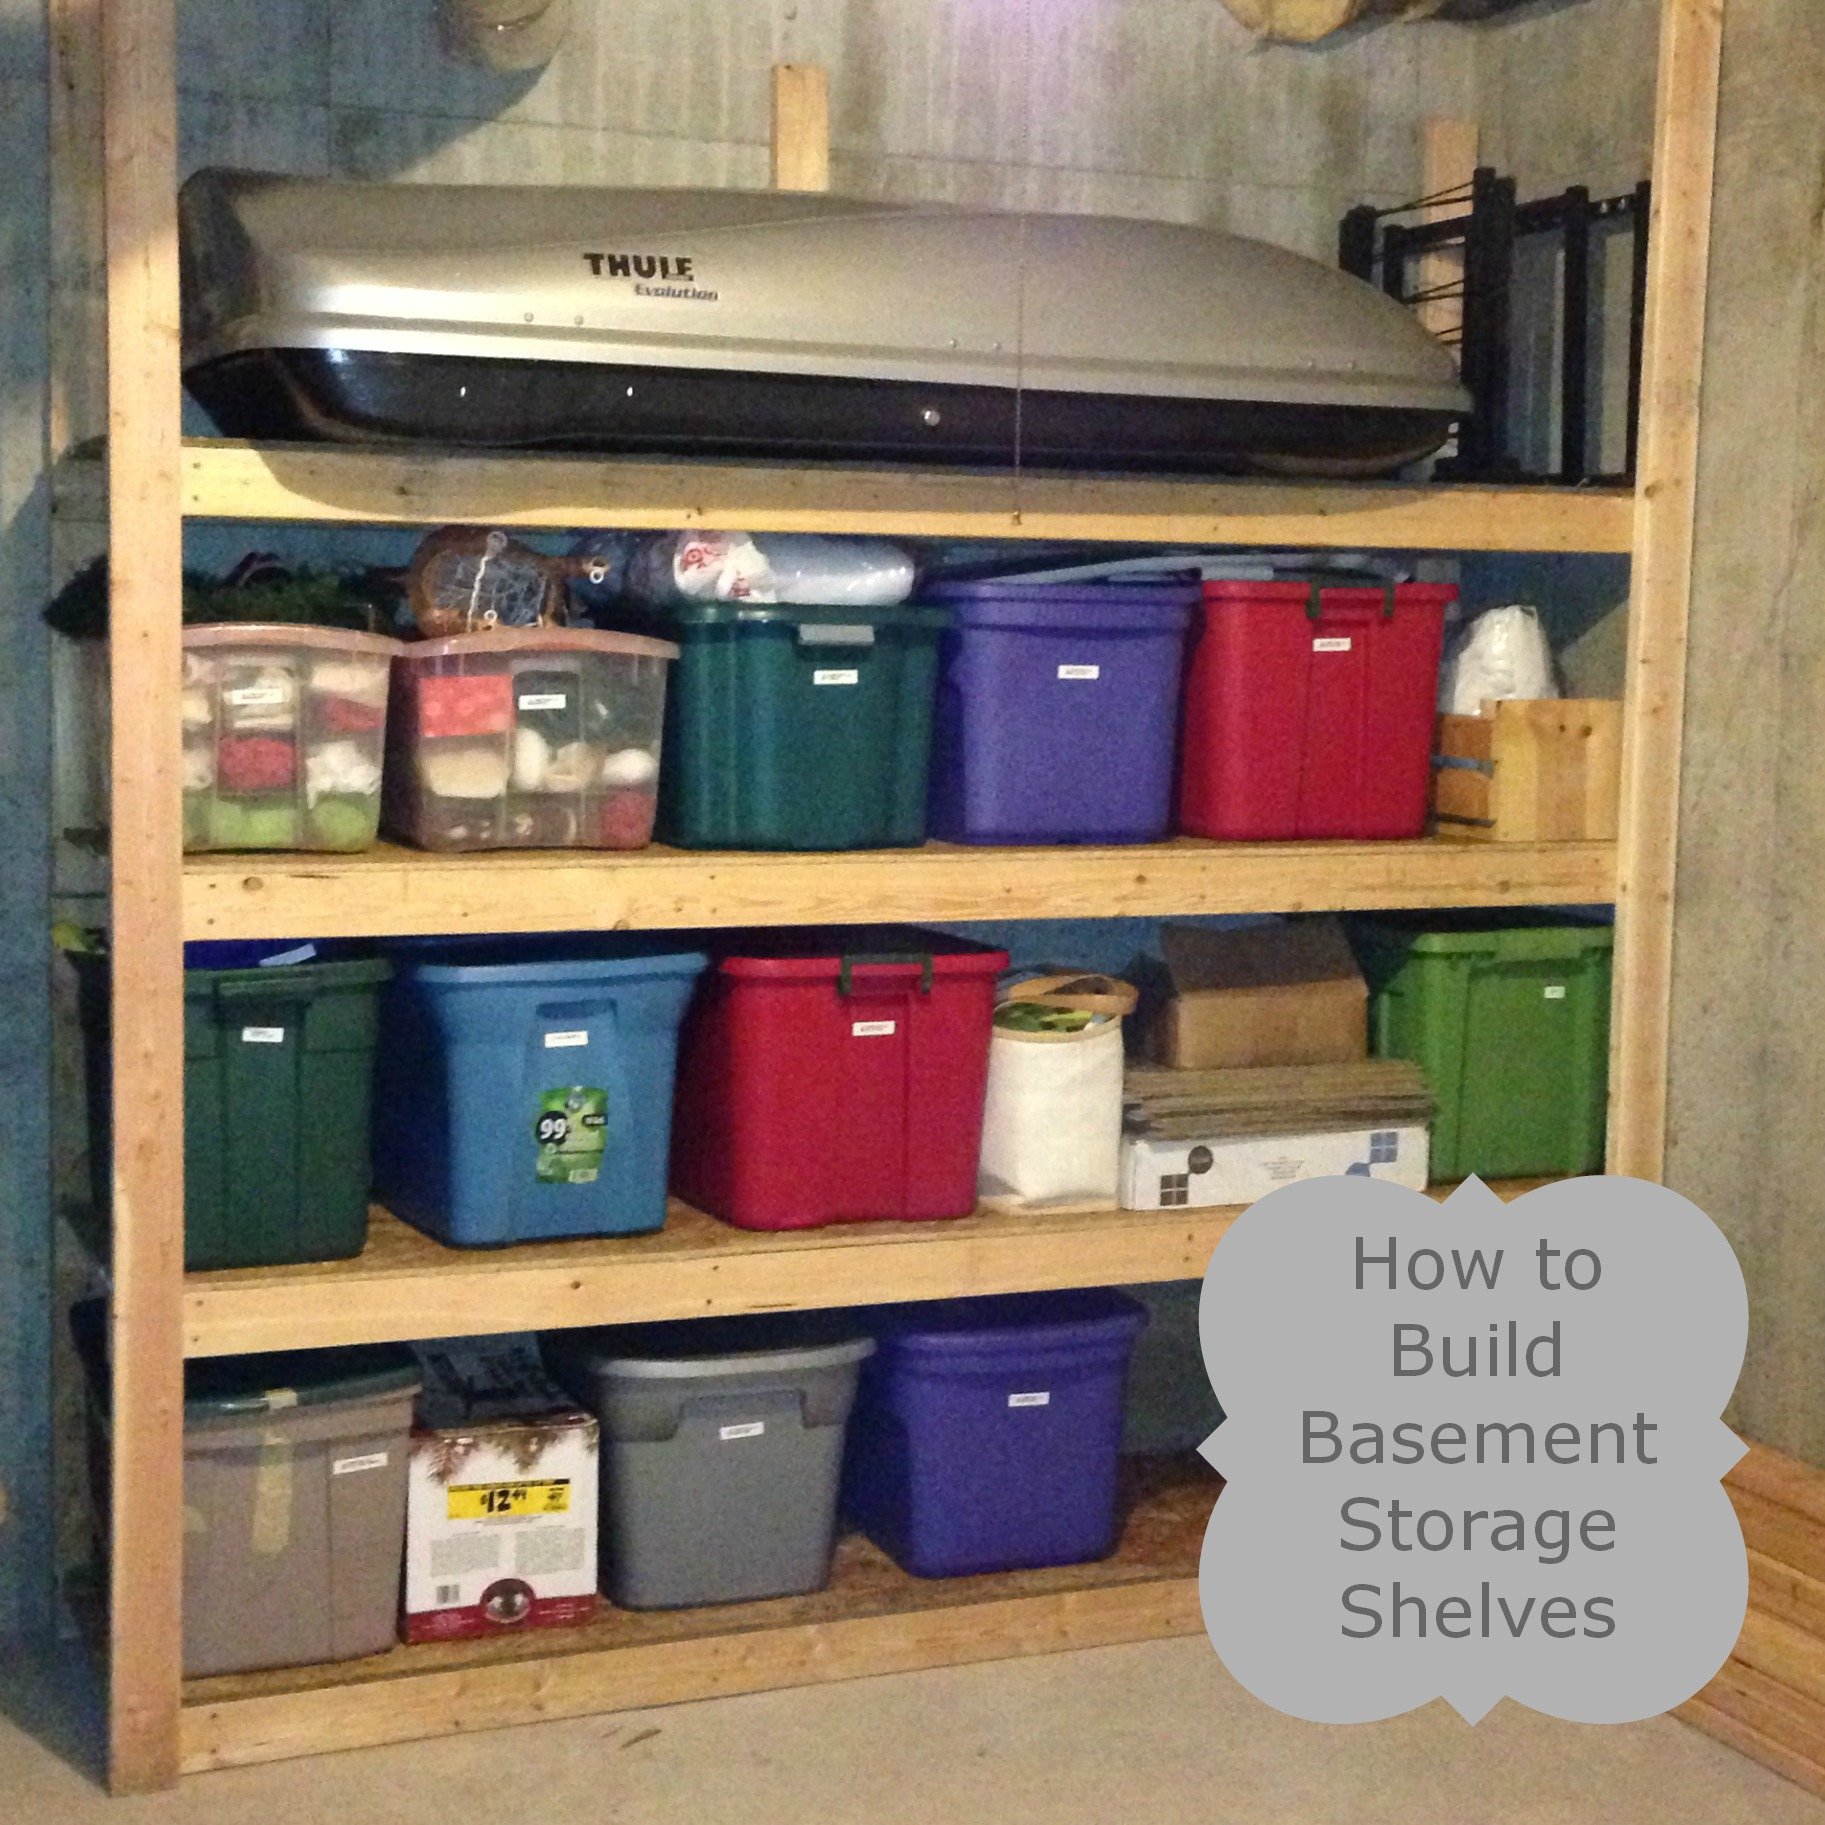 Diy Basement Shelving Plans. Were Planning